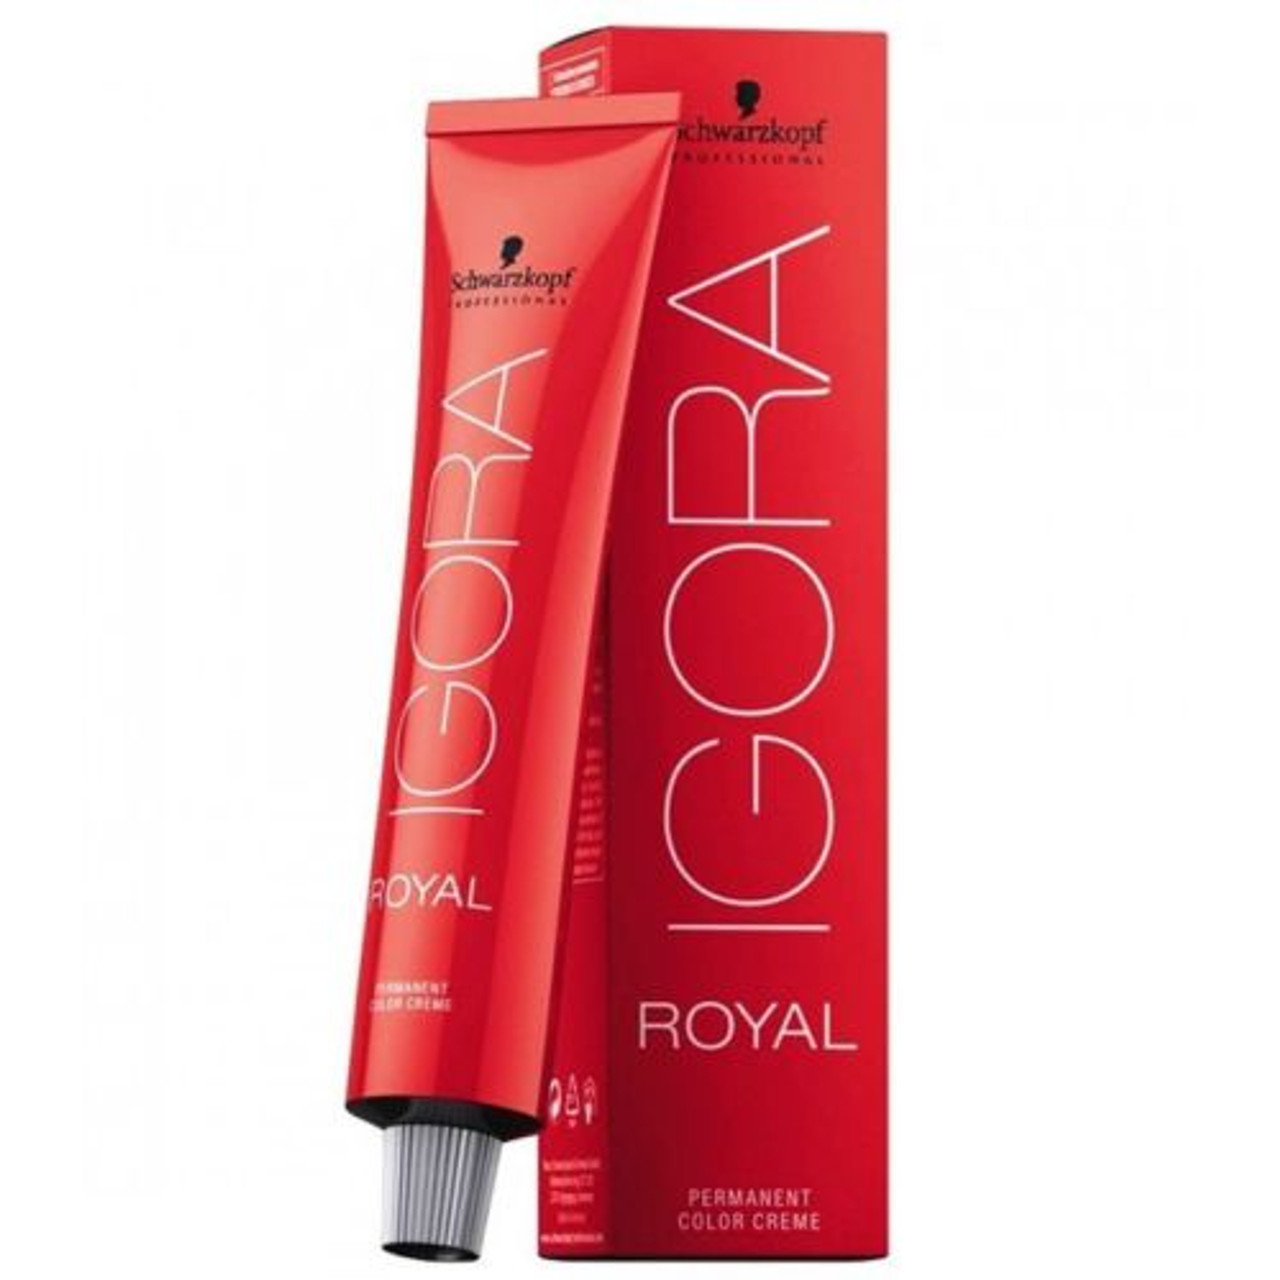 Schwarzkopf Igora Royal Permanent Color Creme - 5-1 Light Ash Brown